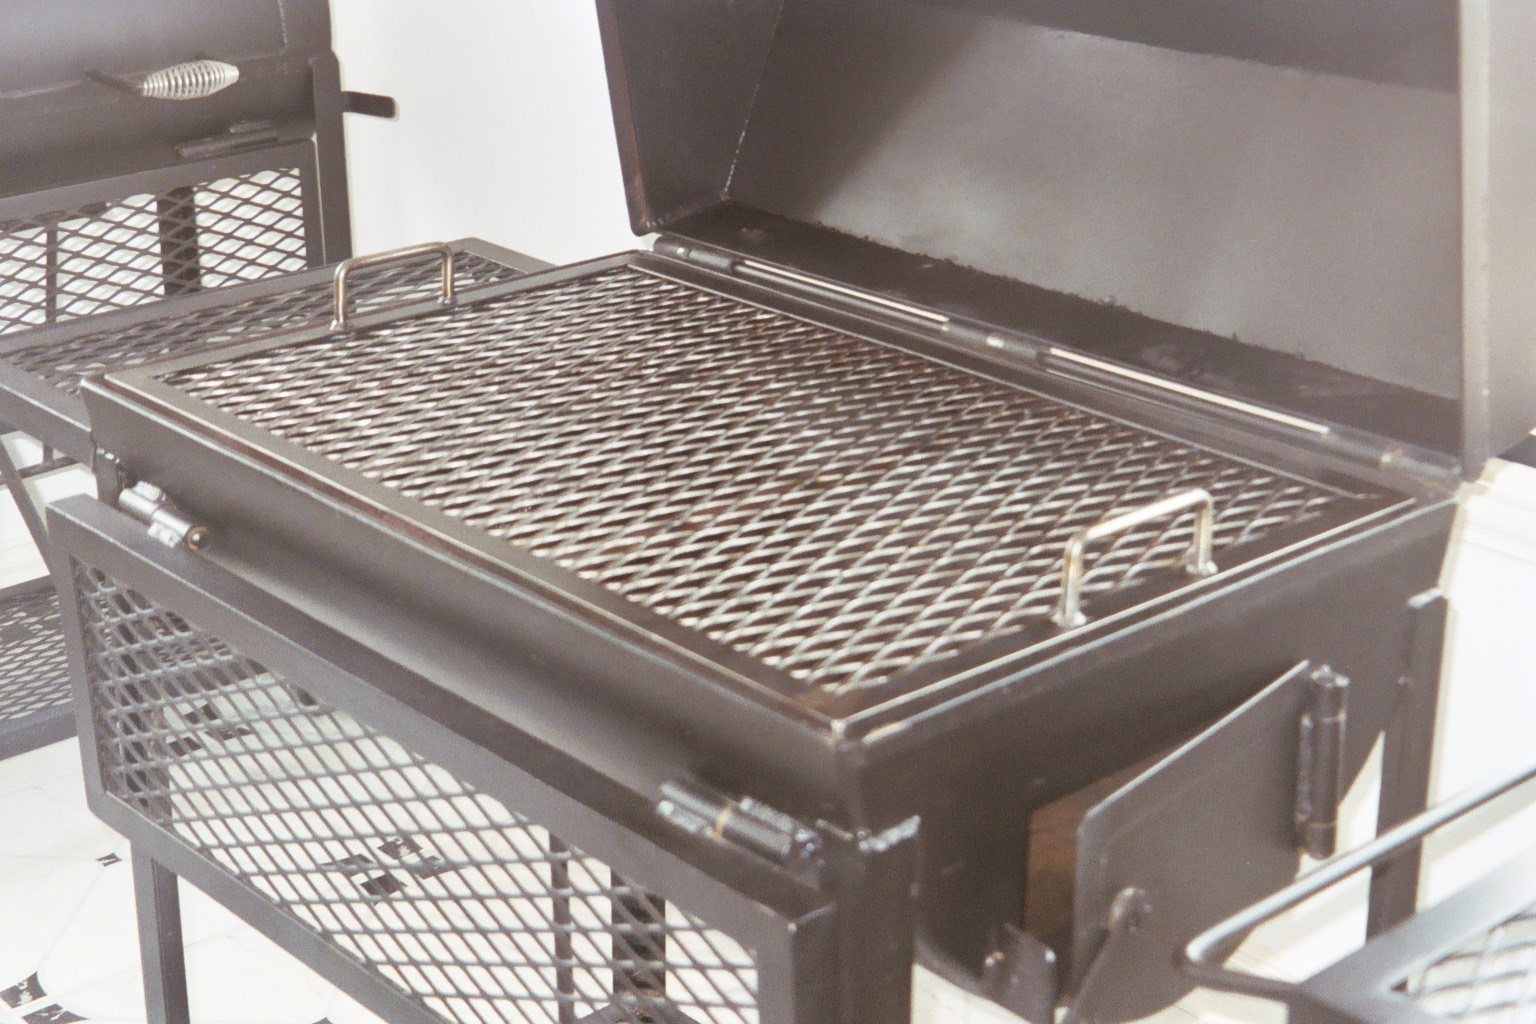 Jj 20x30 open fajita grill pits by jj for Home made product for sale